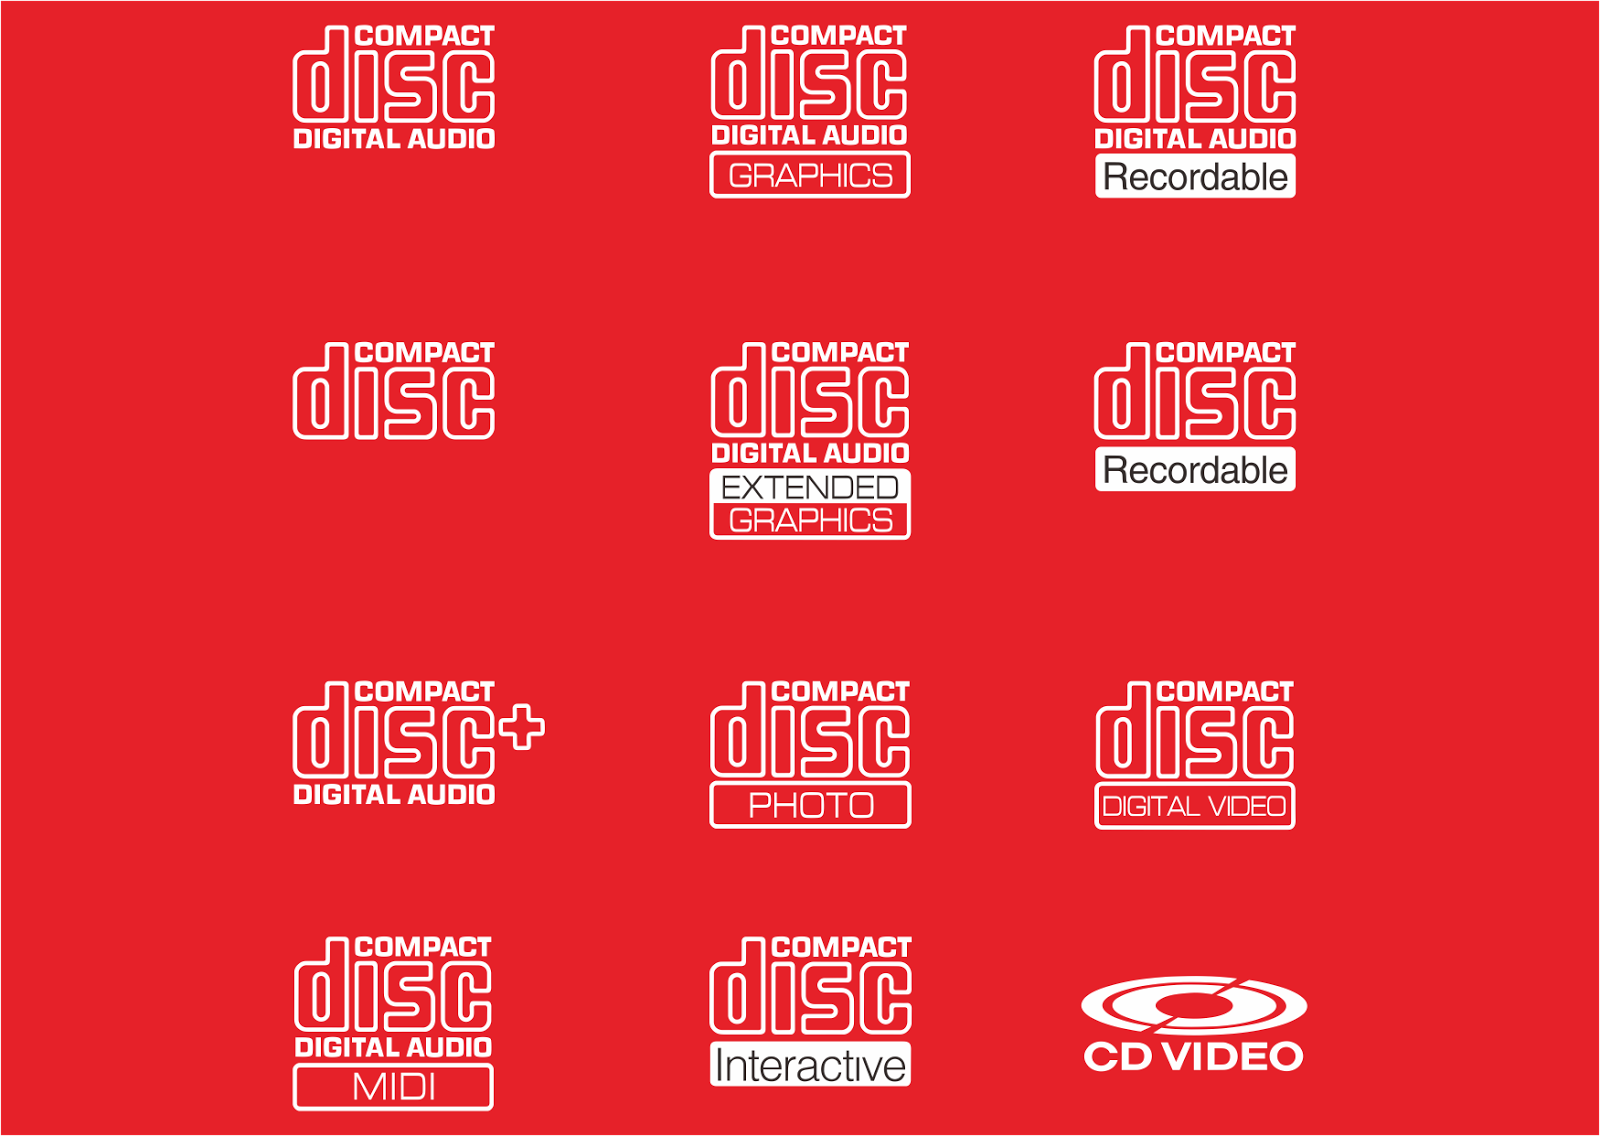 Compact Disk Logo Vector download free